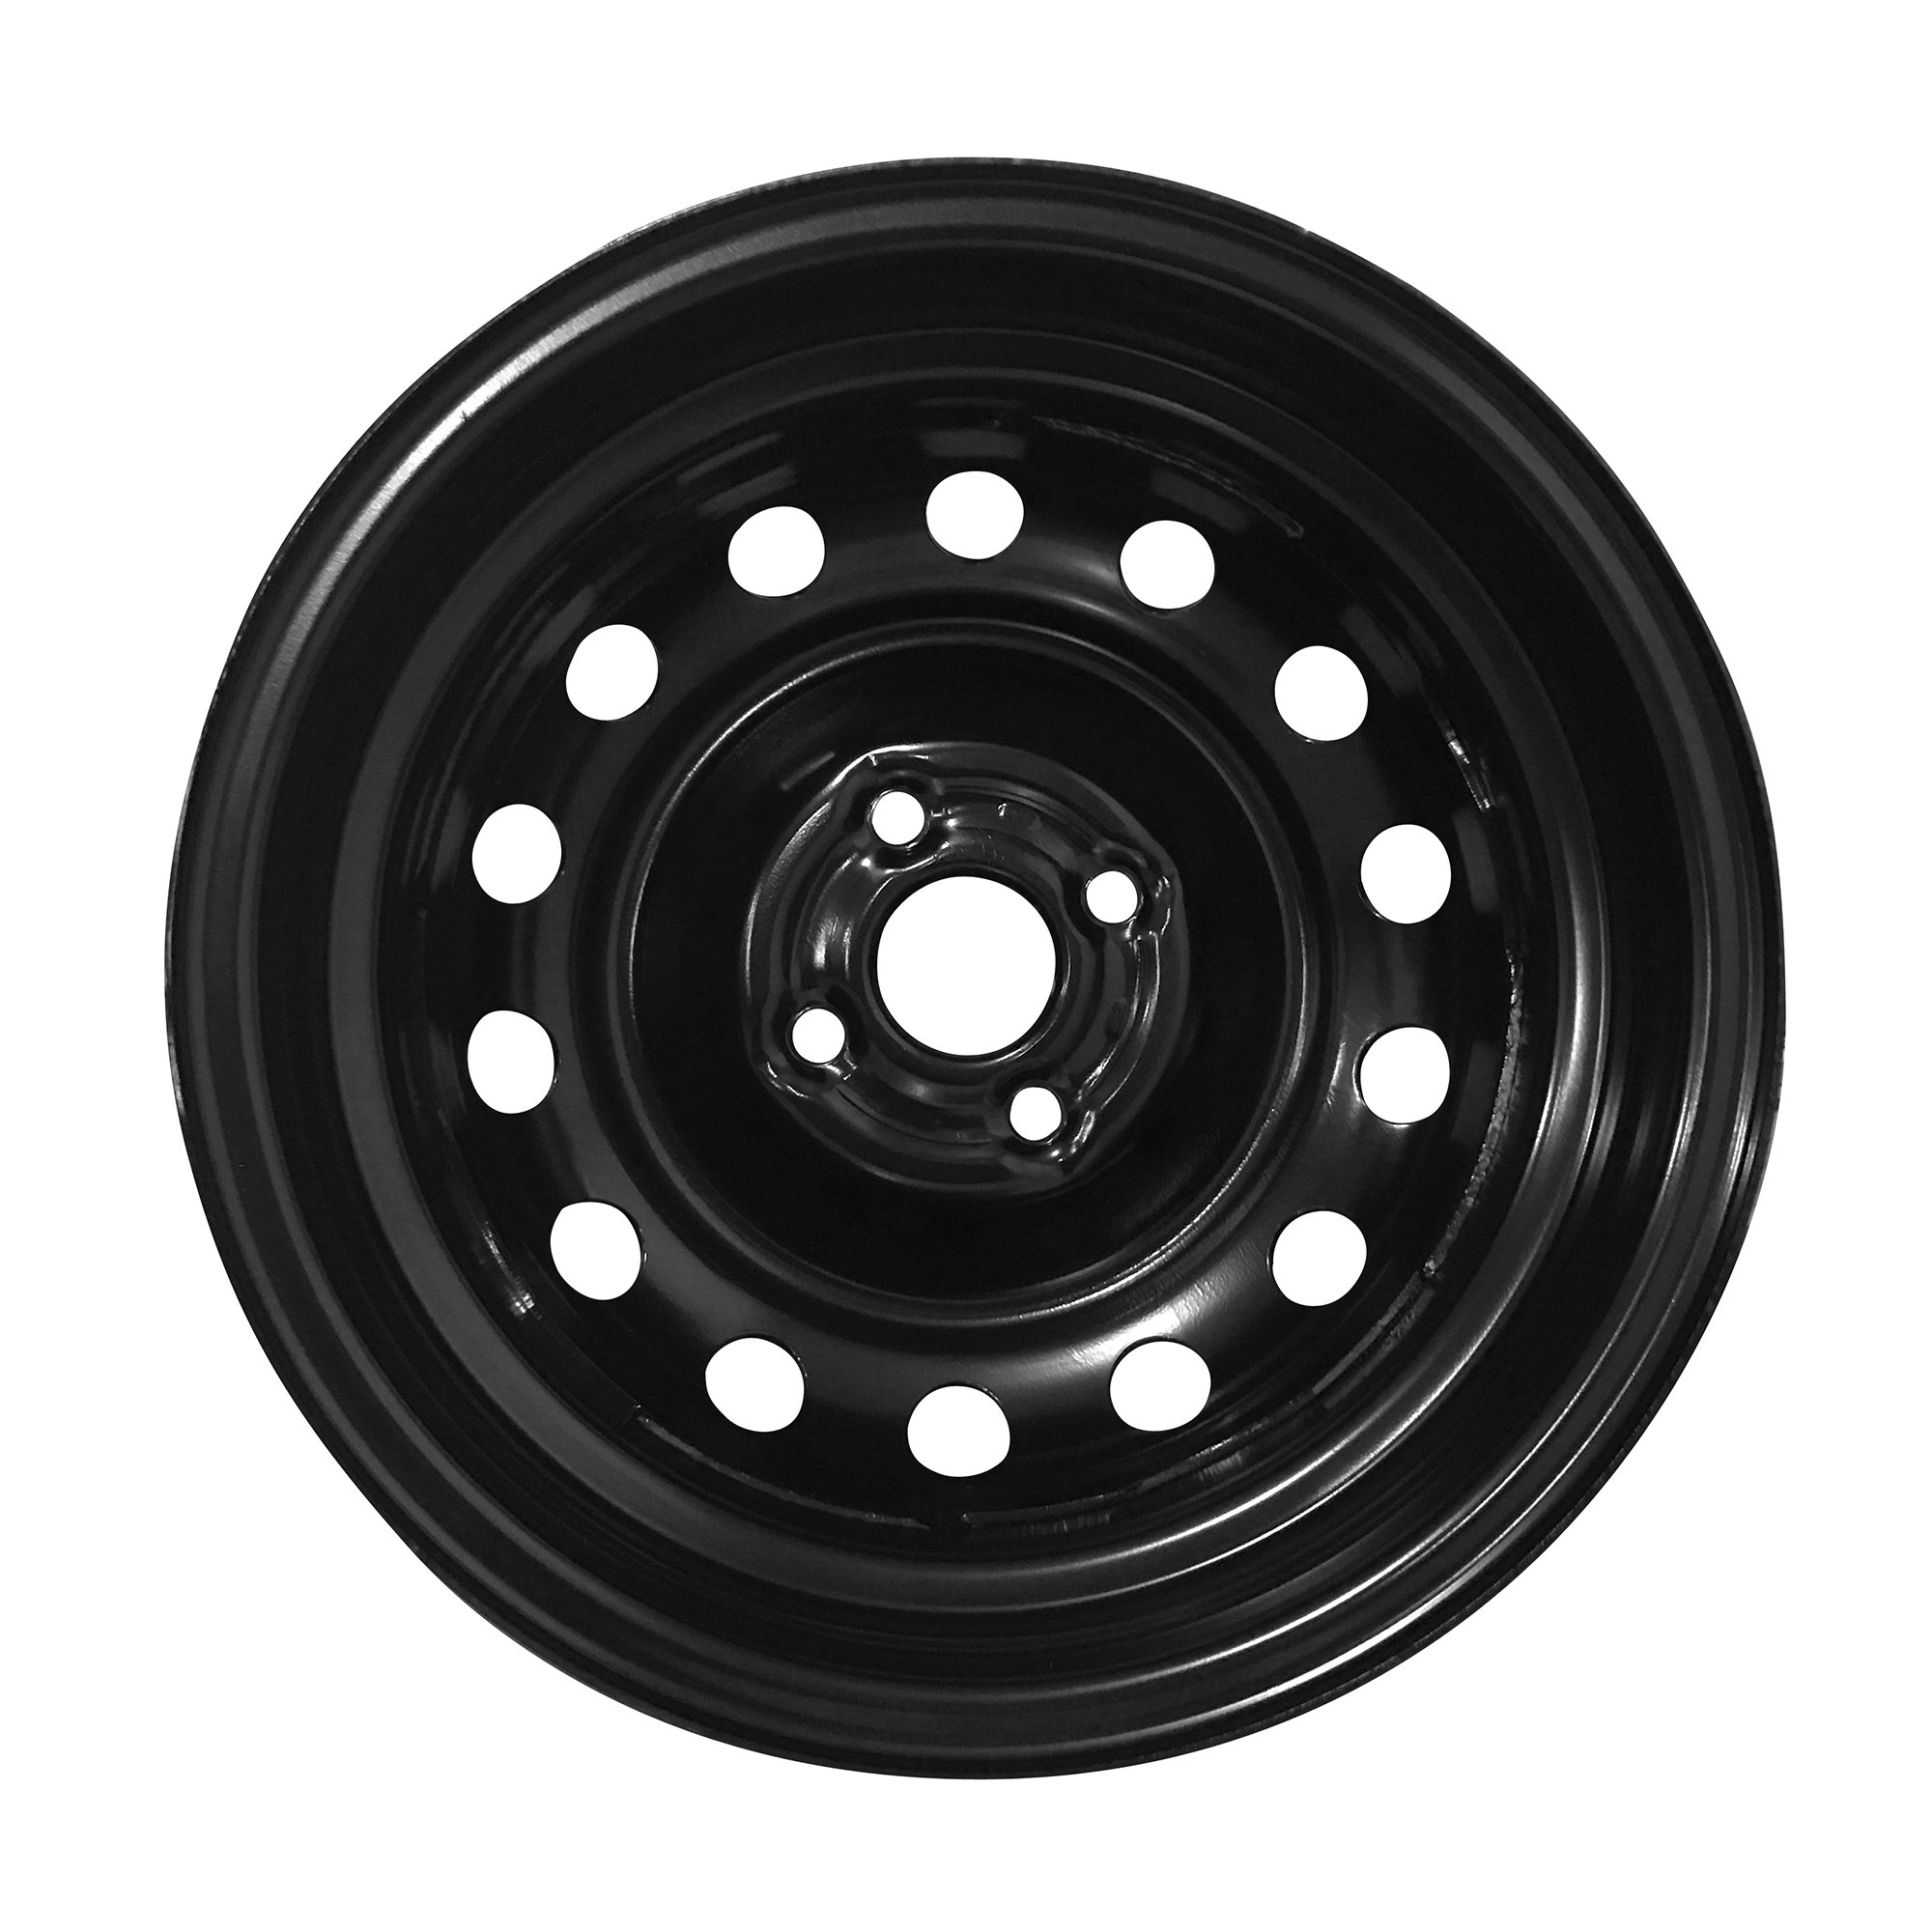 New 14x5 Inch 4 Lug 06-12 Toyota Yaris Full-Size Black Steel Replacement Wheel Rim by Road Ready Wheels (Image #2)